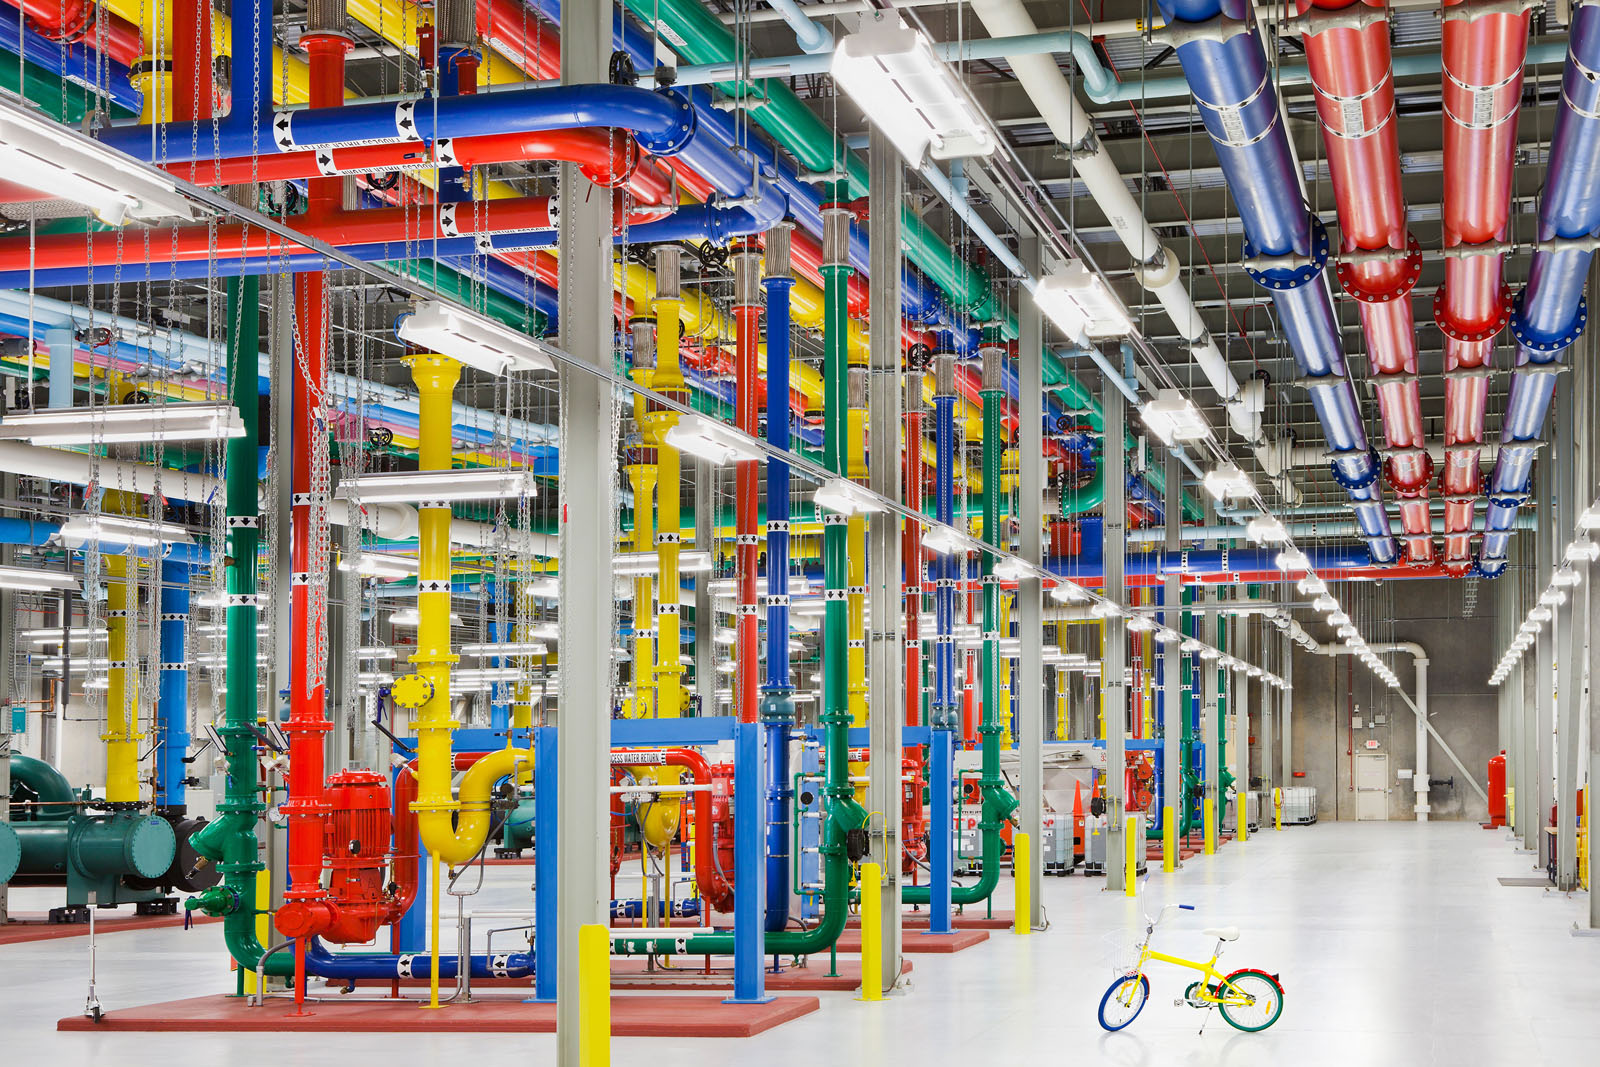 Sofas Around The World Inside Google's High-tech Data Centers | Idesignarch